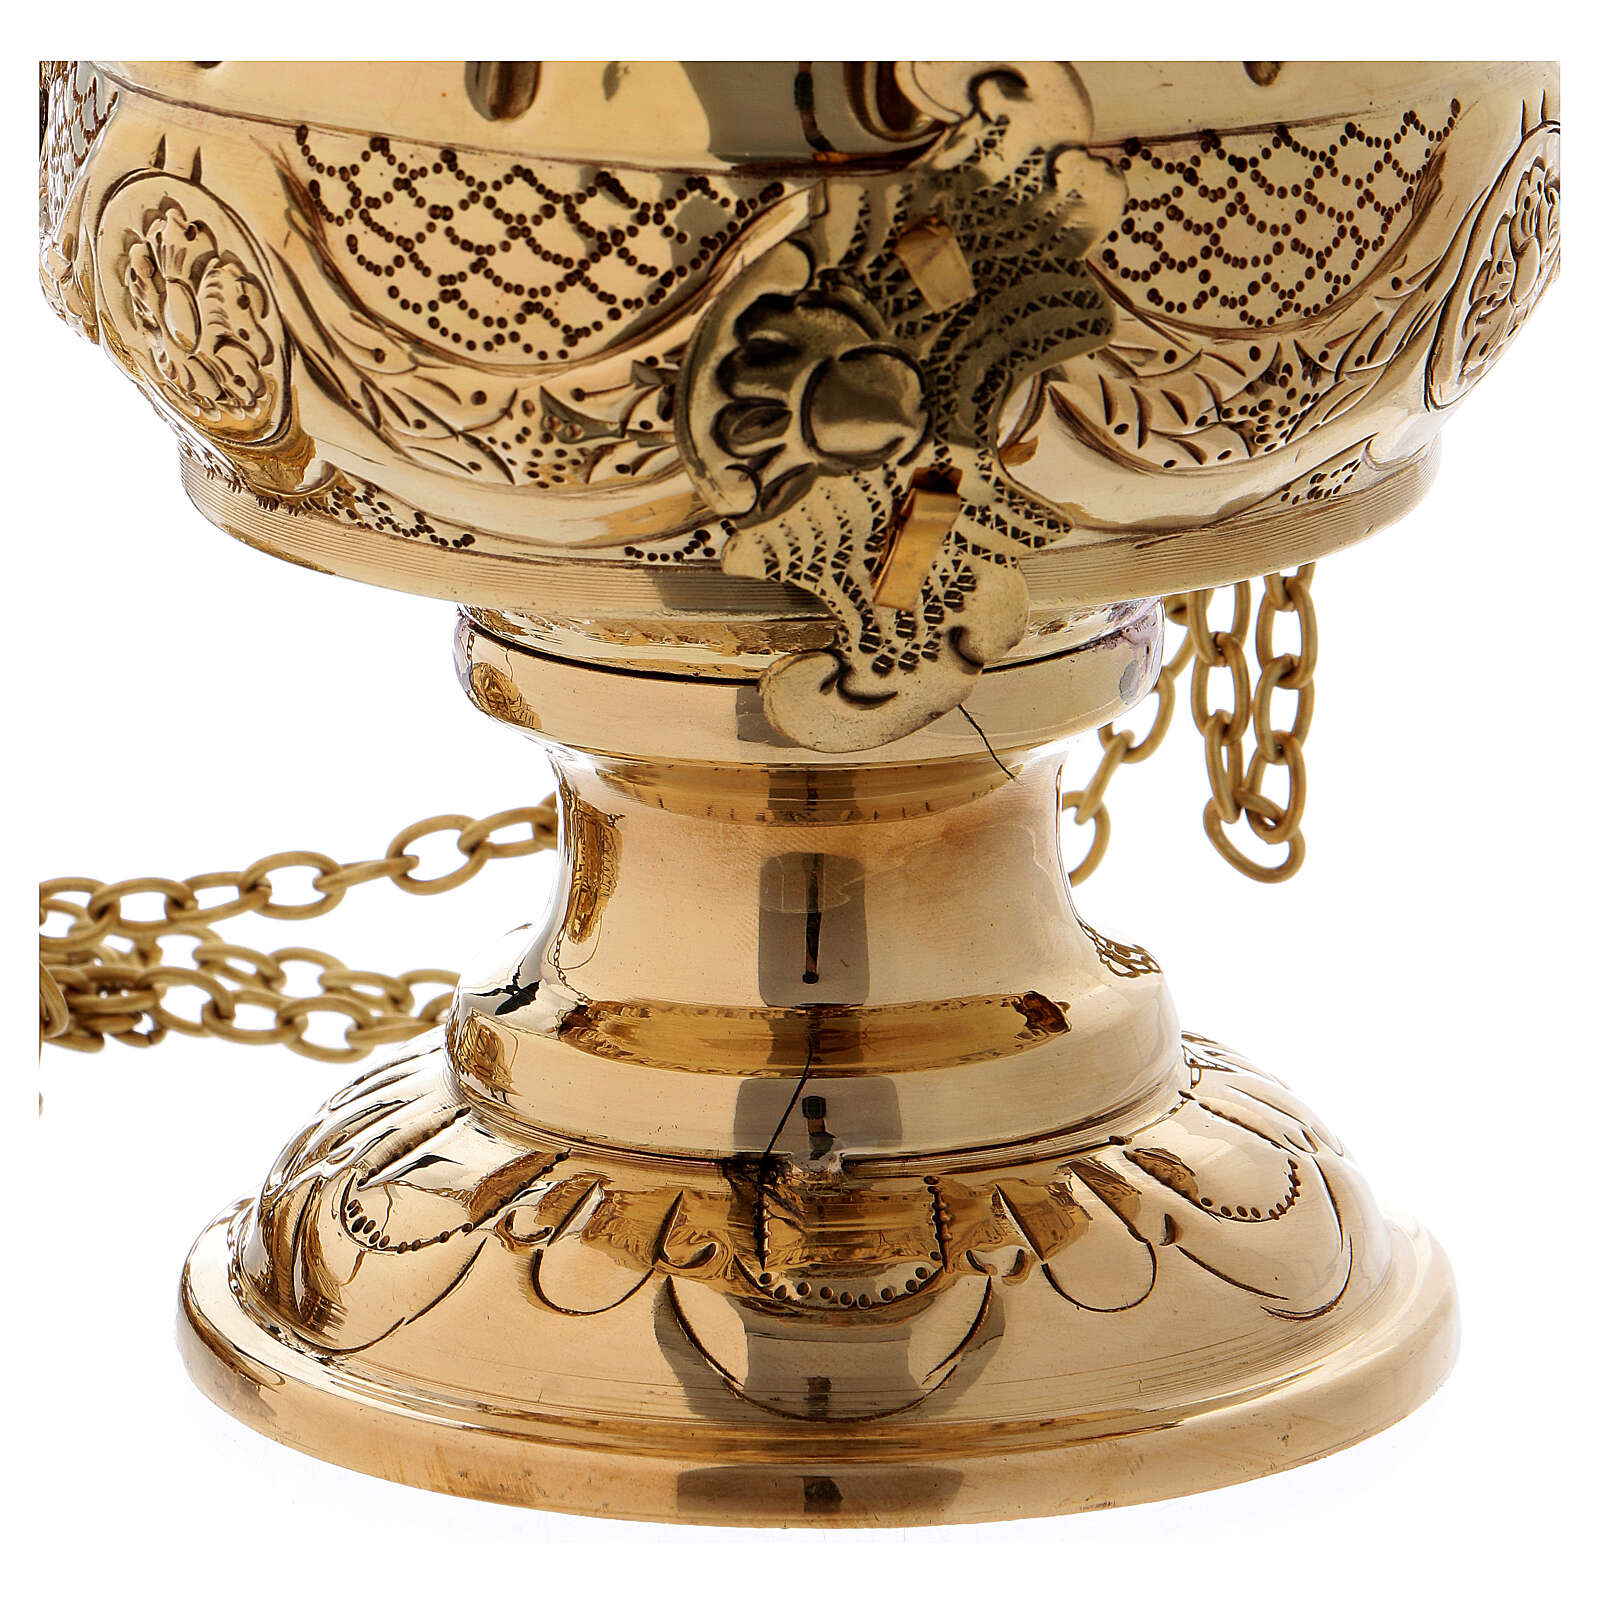 Chiseled thurible with inlays gold plated brass 10 1/4 in 3